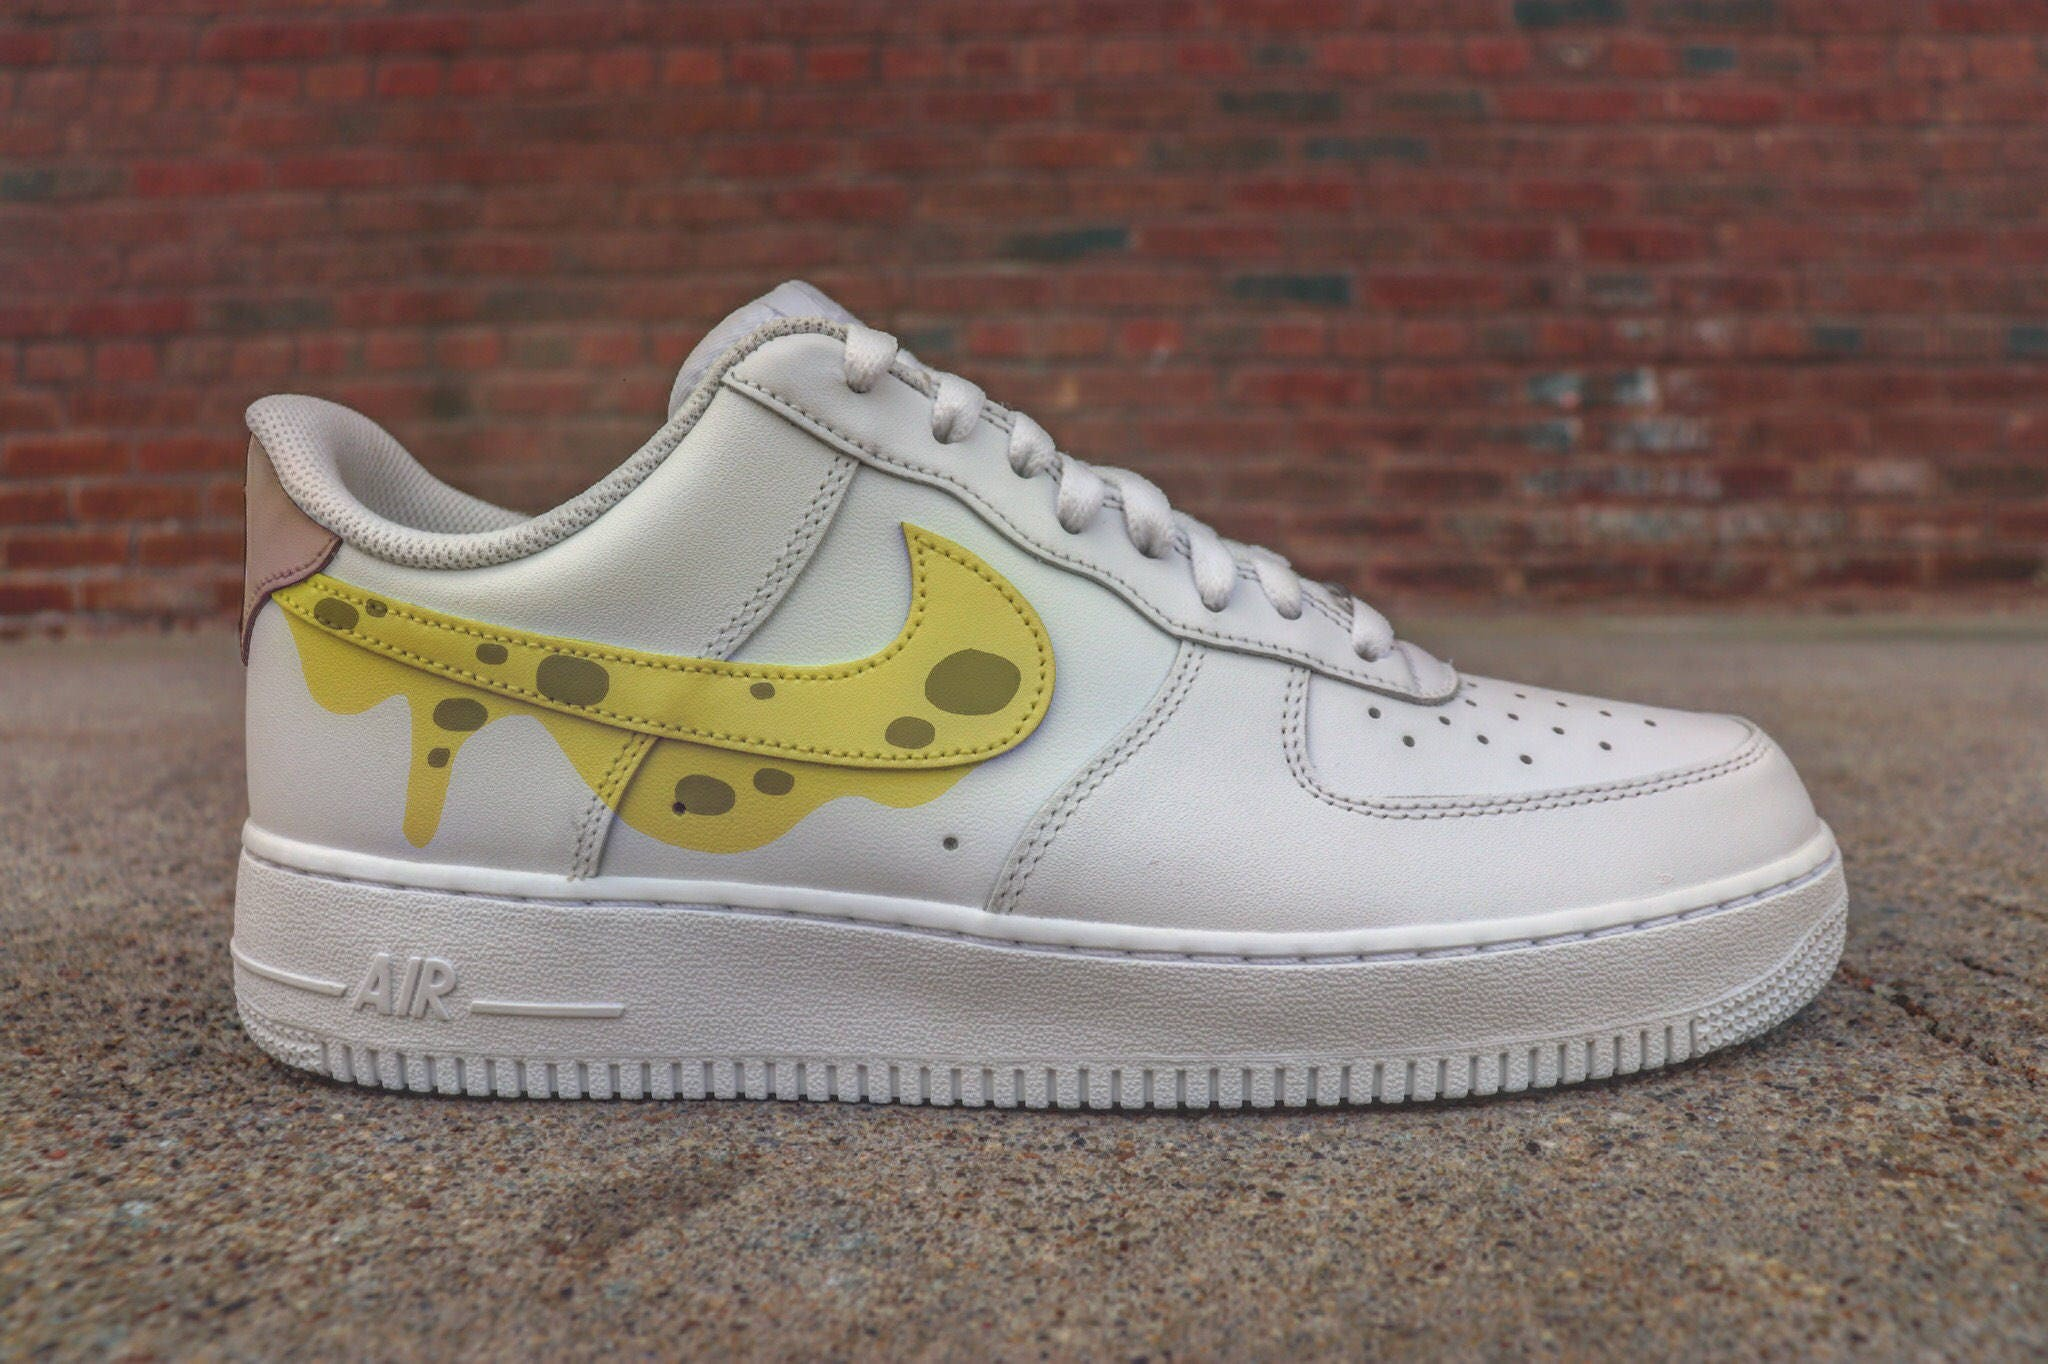 buy online f4eb3 151b5 ... official store sponge bob nike air force 1 custom plus vab bikini  bottom etsy 29aeb 309b7 ...